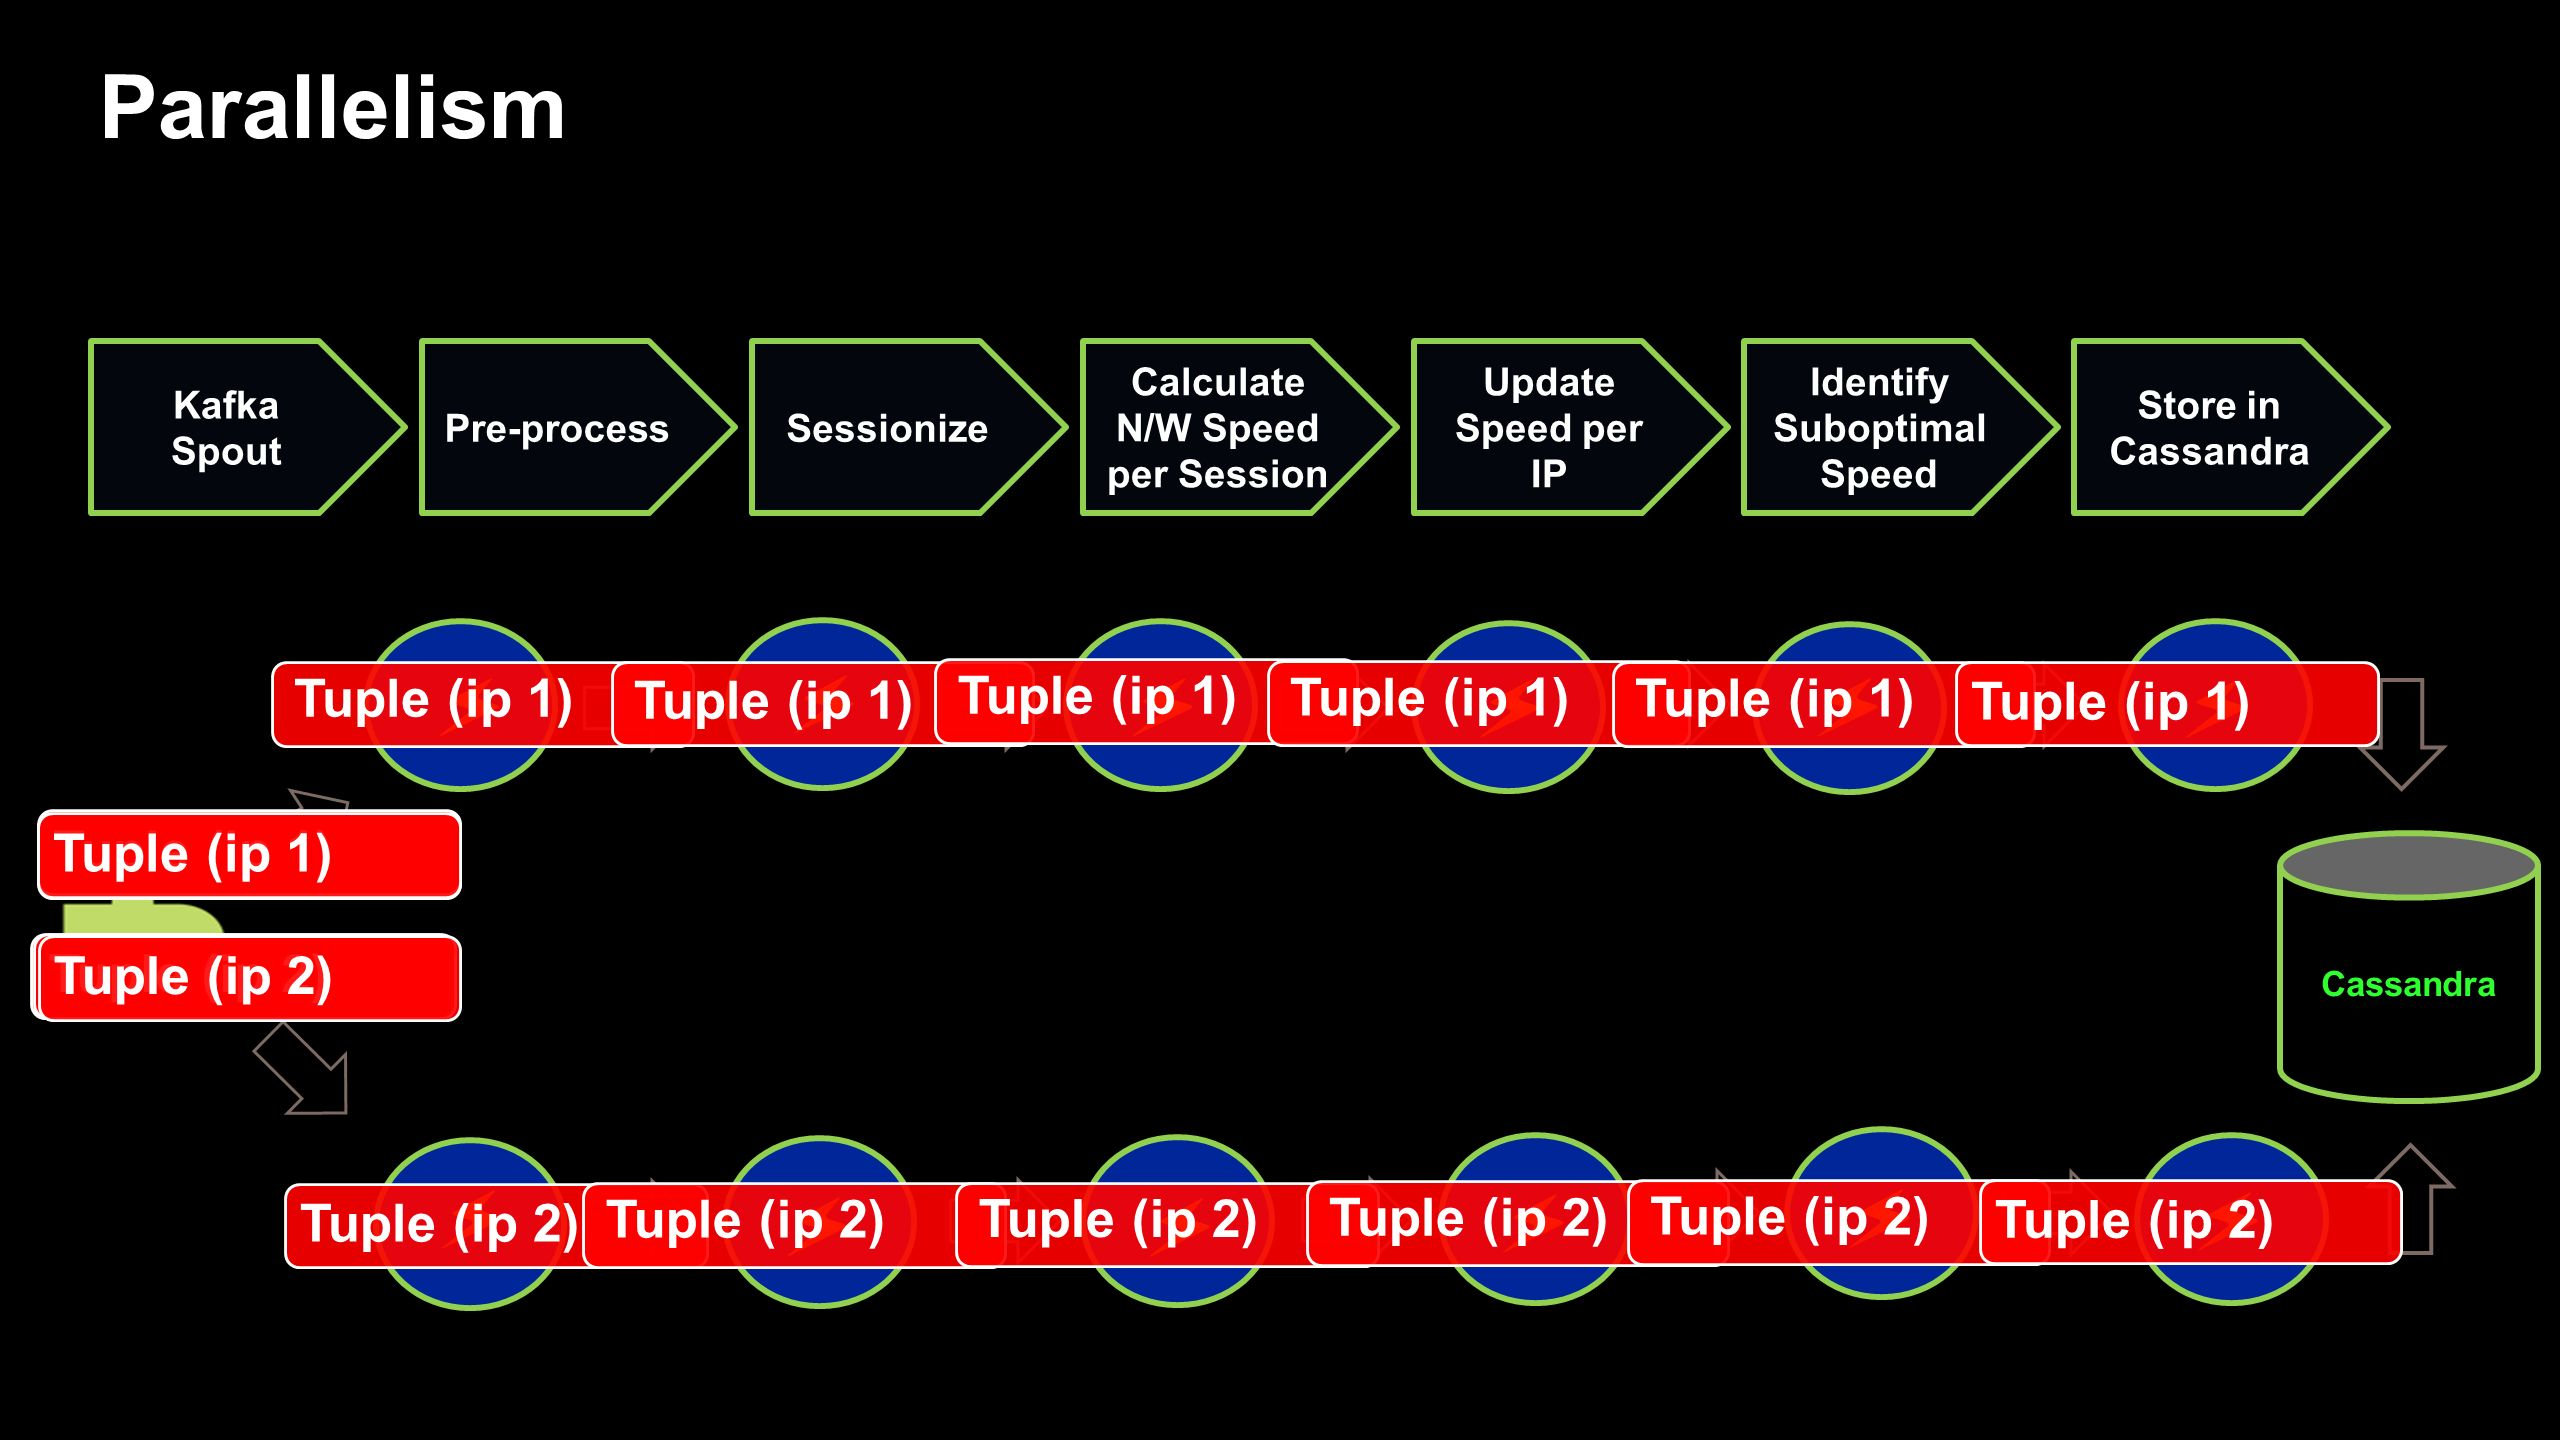 Cassandra Kafka Spout Pre-processSessionize Calculate N/W Speed per Session Update Speed per IP Join Compare Speed Store in Cassandra Speed by Location Stream 1 Stream 2 Kafka Spout Tuple (ip 1) Branching and Joins Tuple (ip 1/NY ) Tuple (NY)